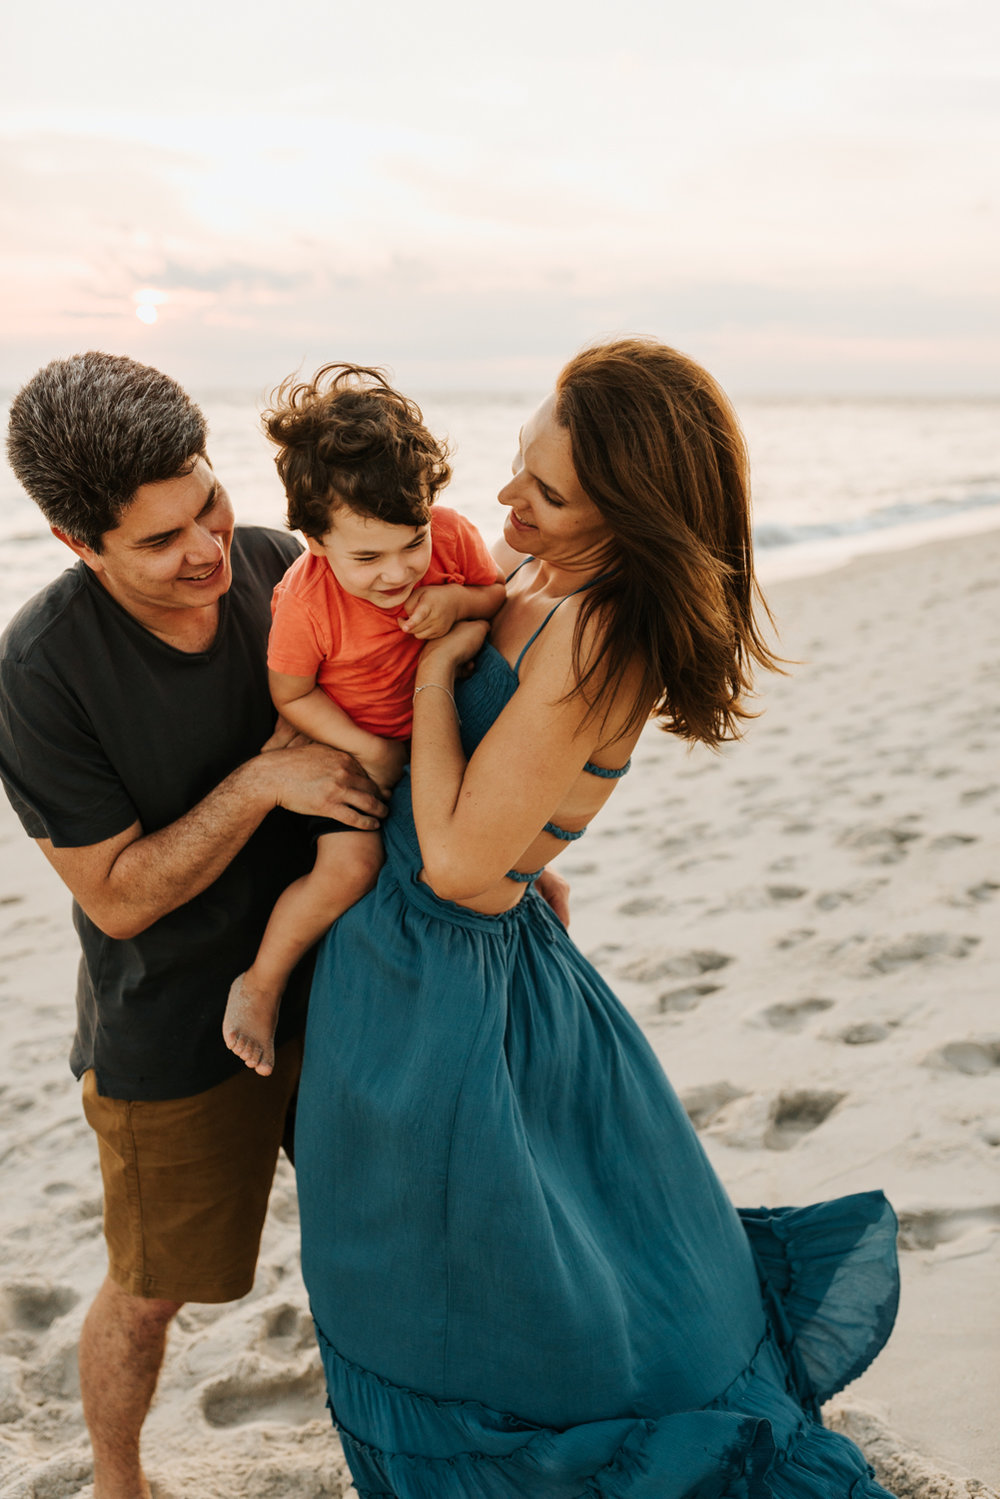 Emotional Family Photos | Emotive Images